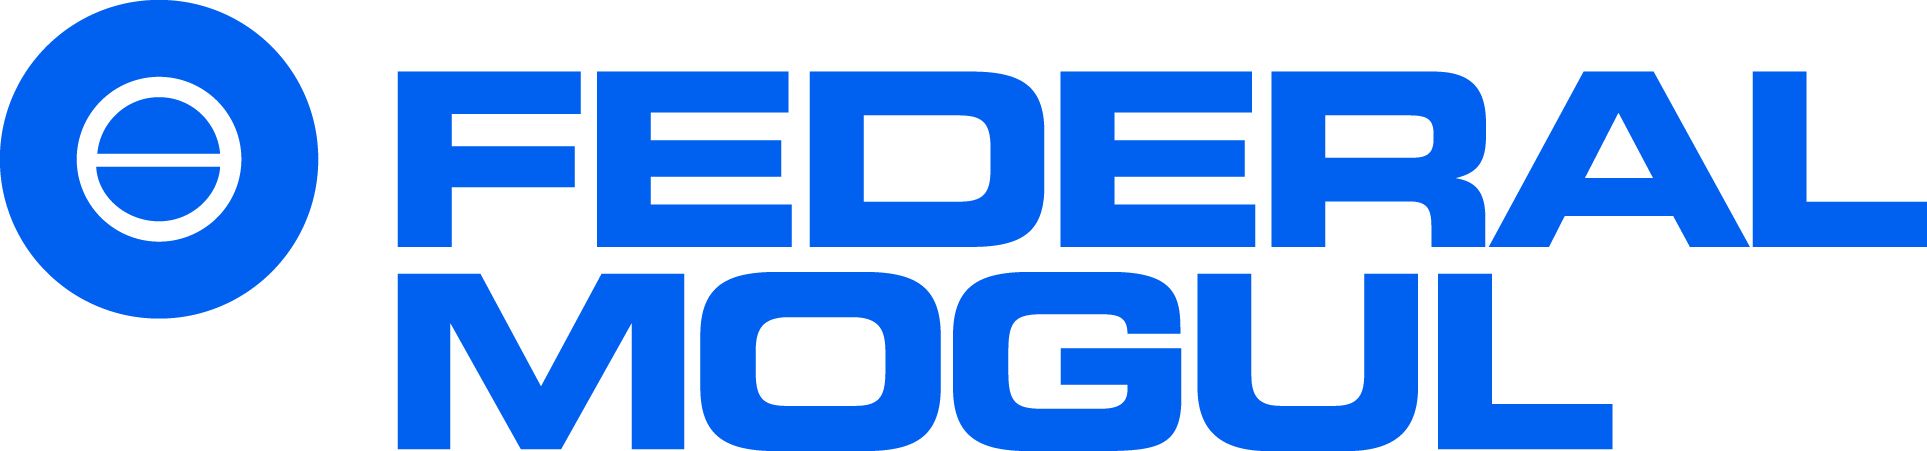 CARROSSERIE ENRIETTO - logo Federal Mogul